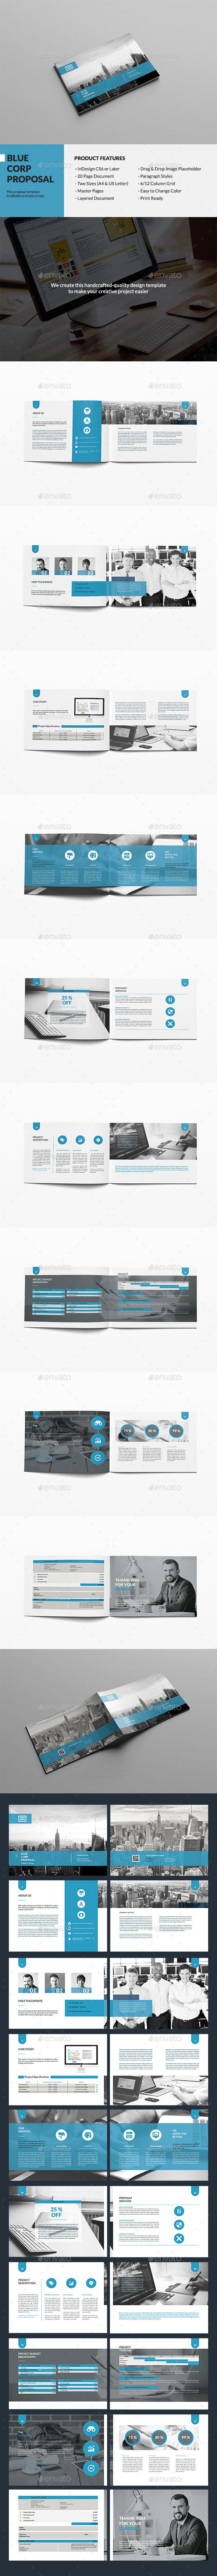 Blue Corp Proposal - Proposals & Invoices Stationery